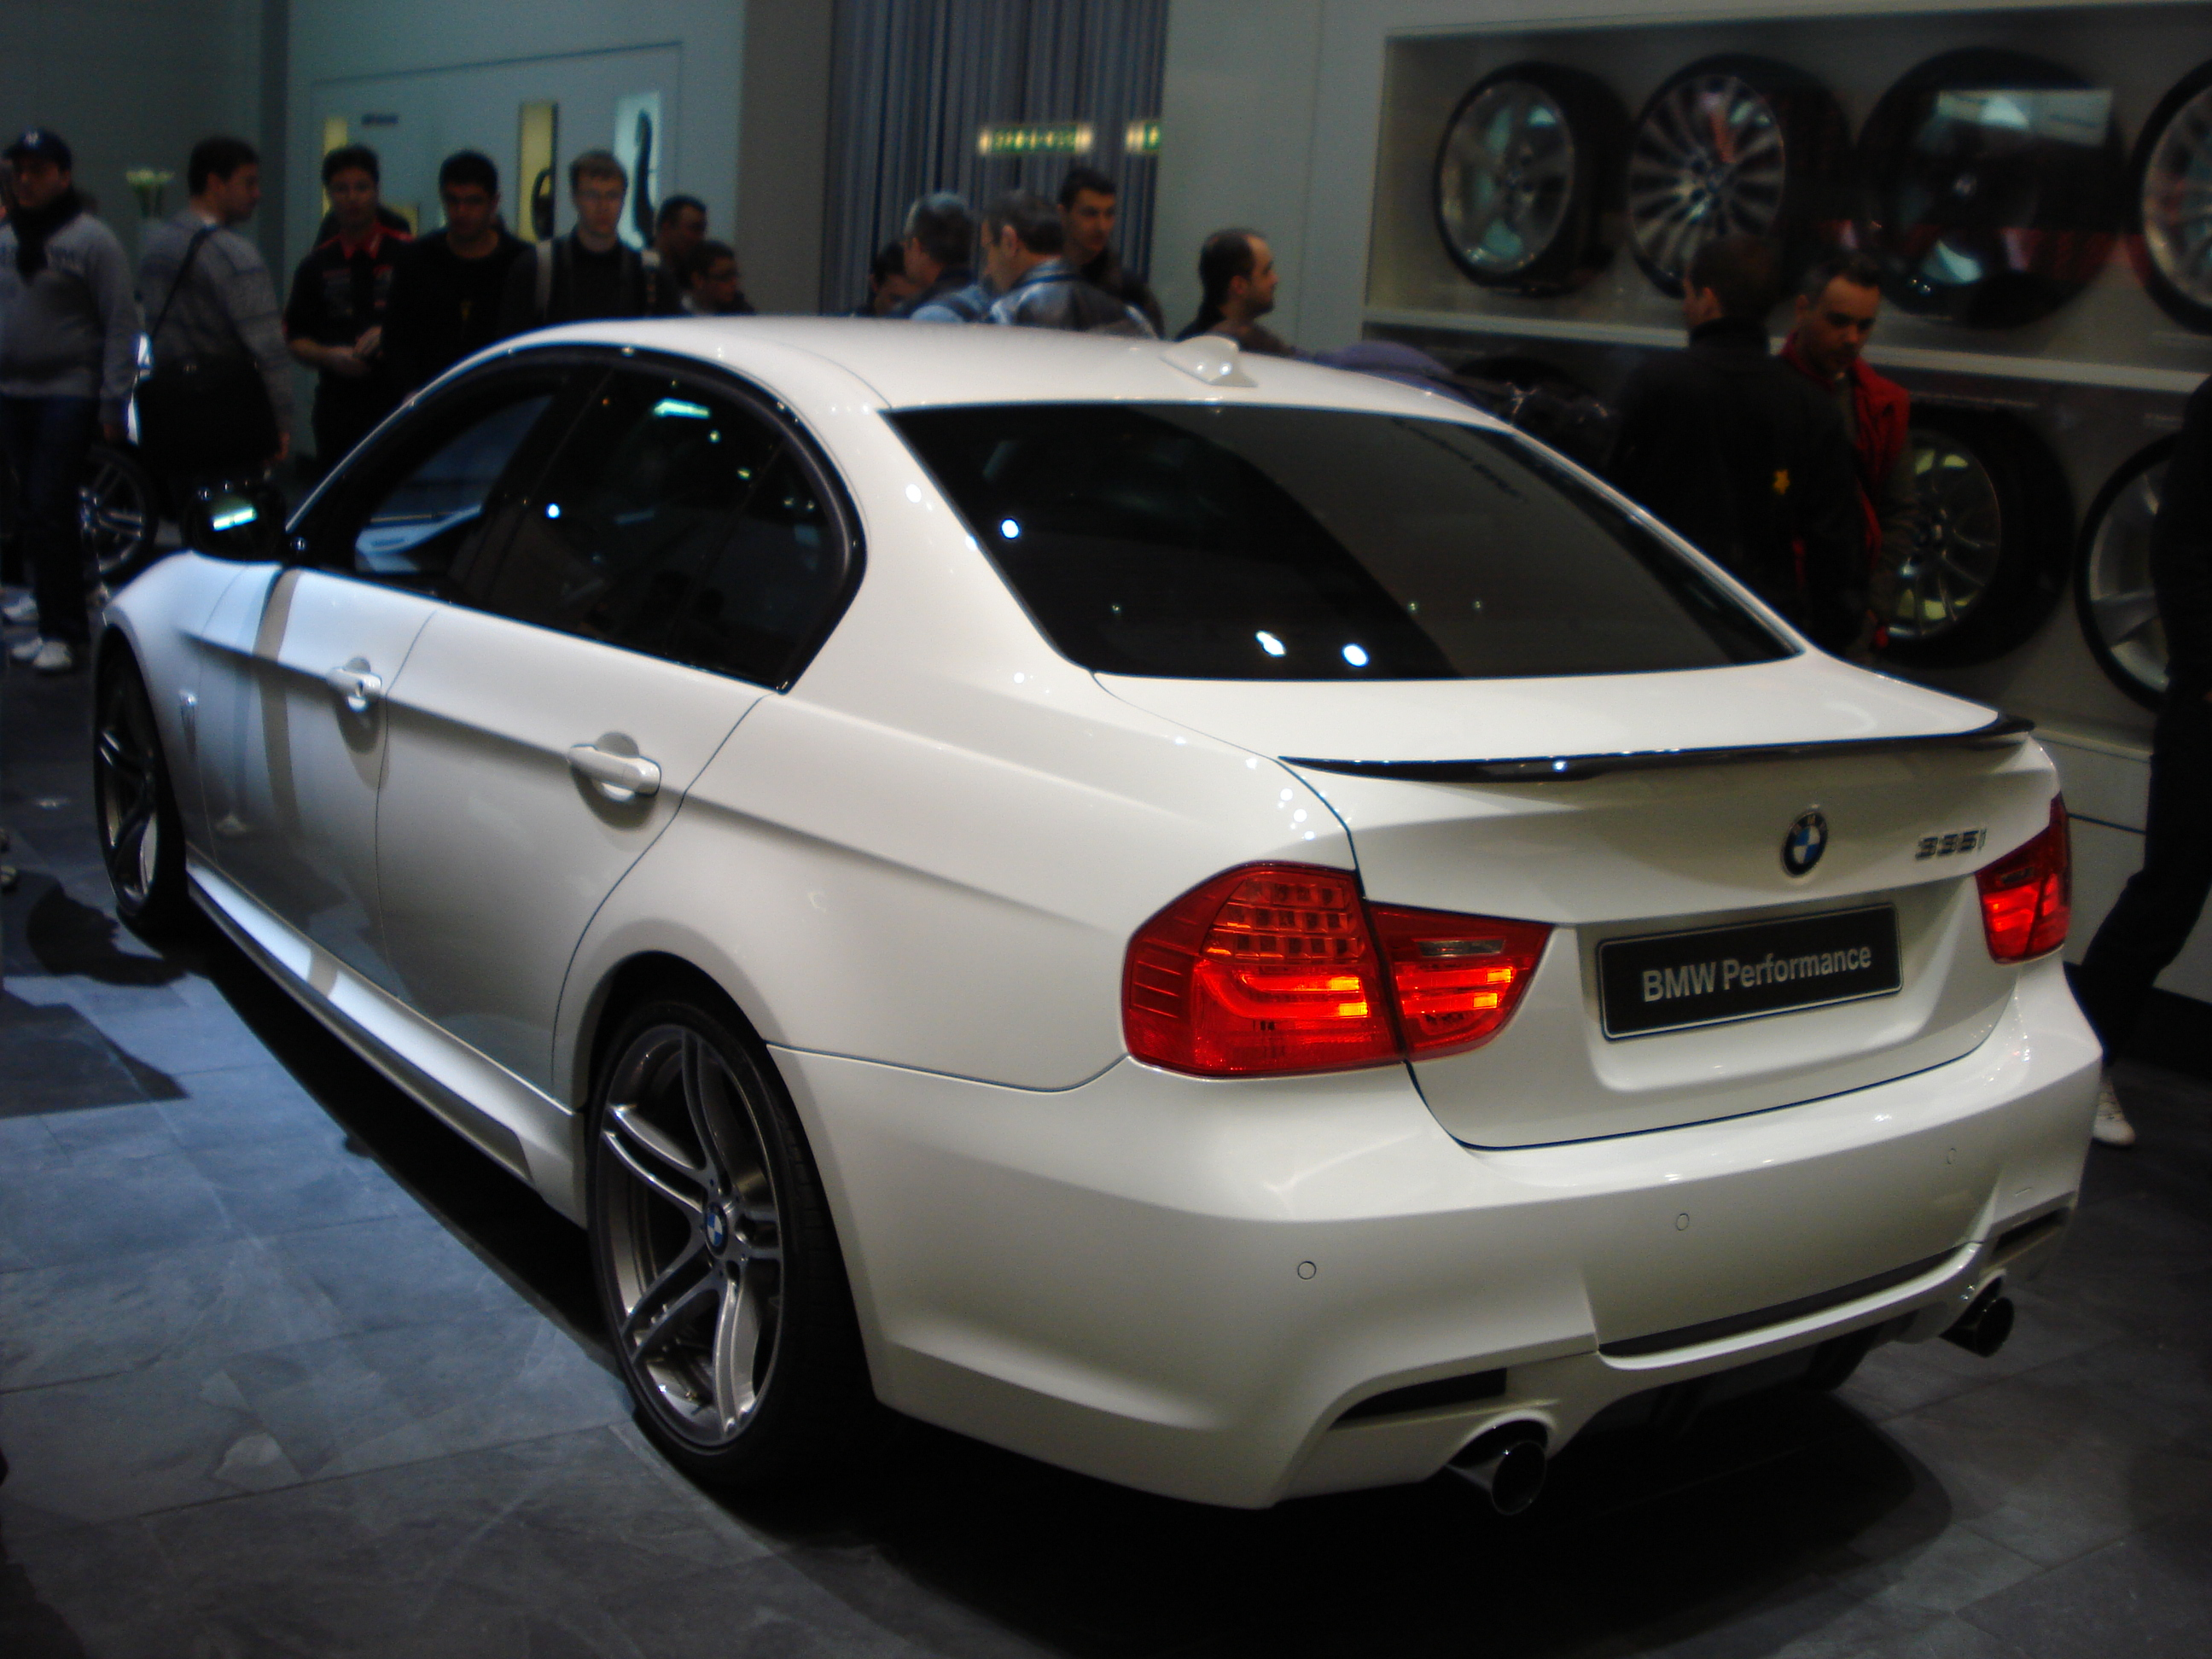 BMW 335i Performance | Flickr - Photo Sharing!